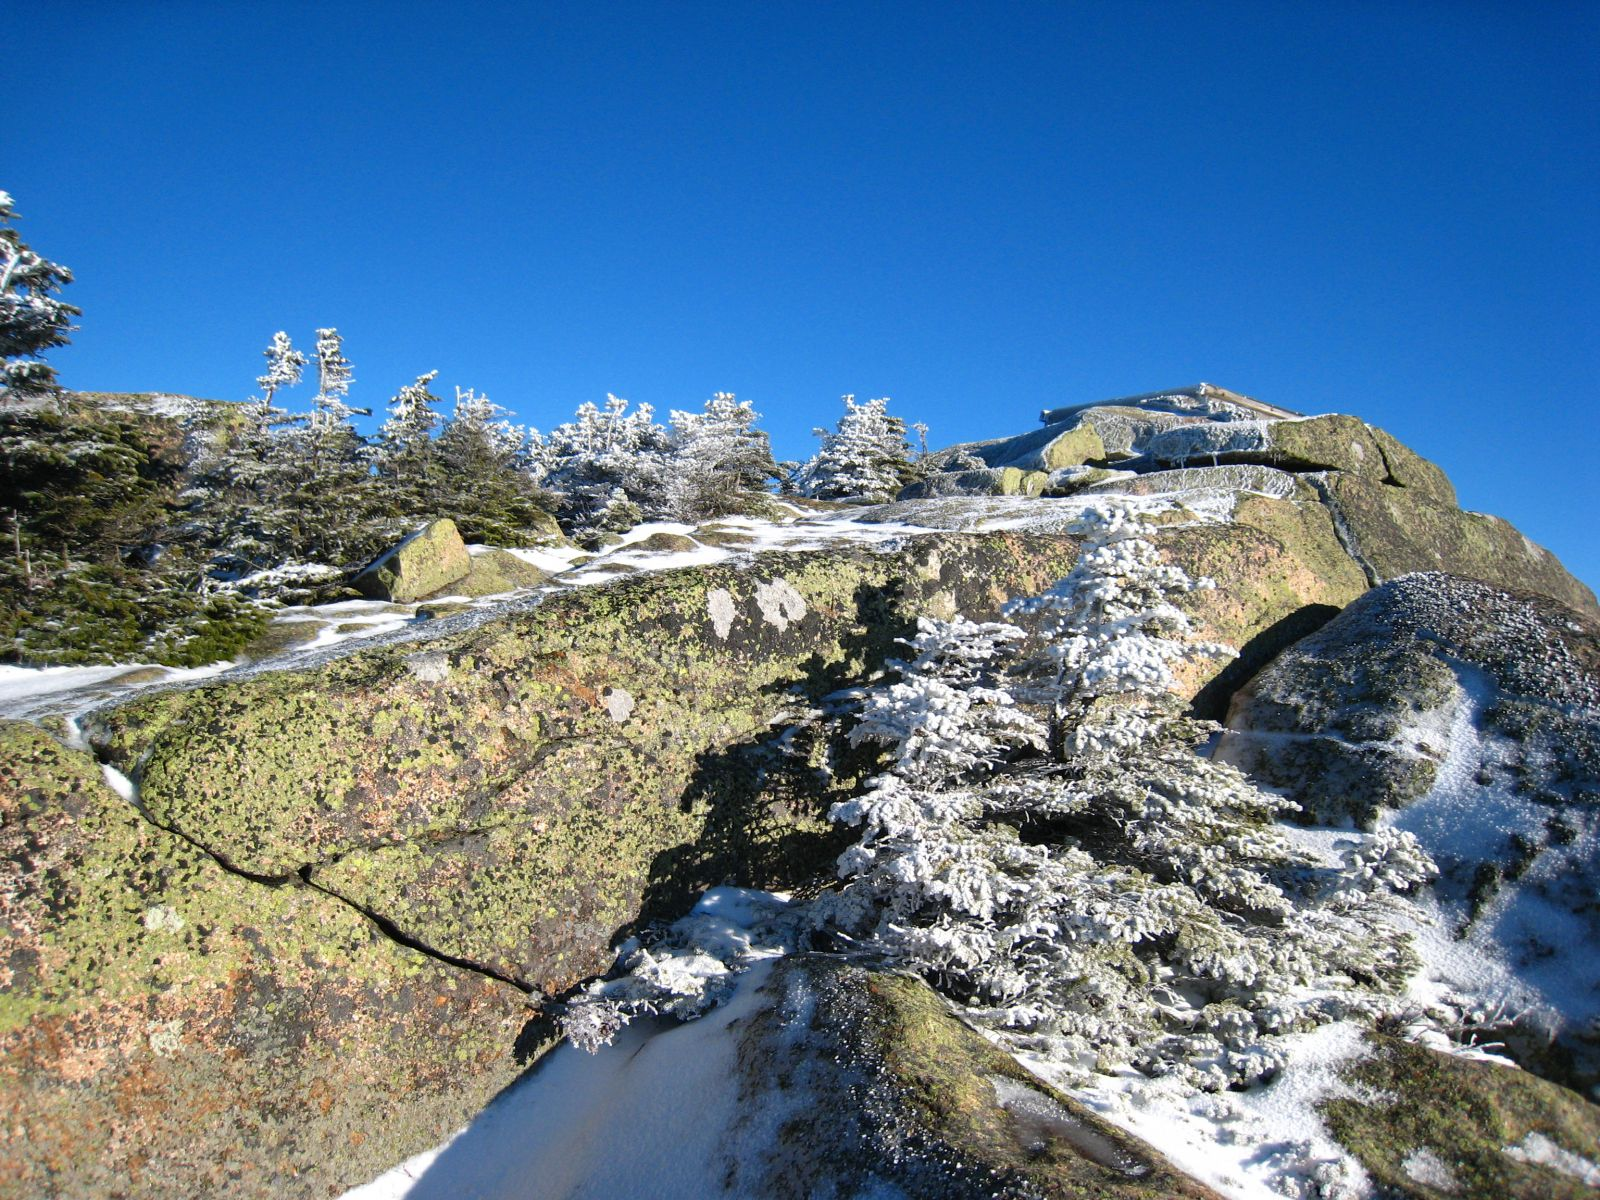 Looking up to the summit of Mt. Garfield